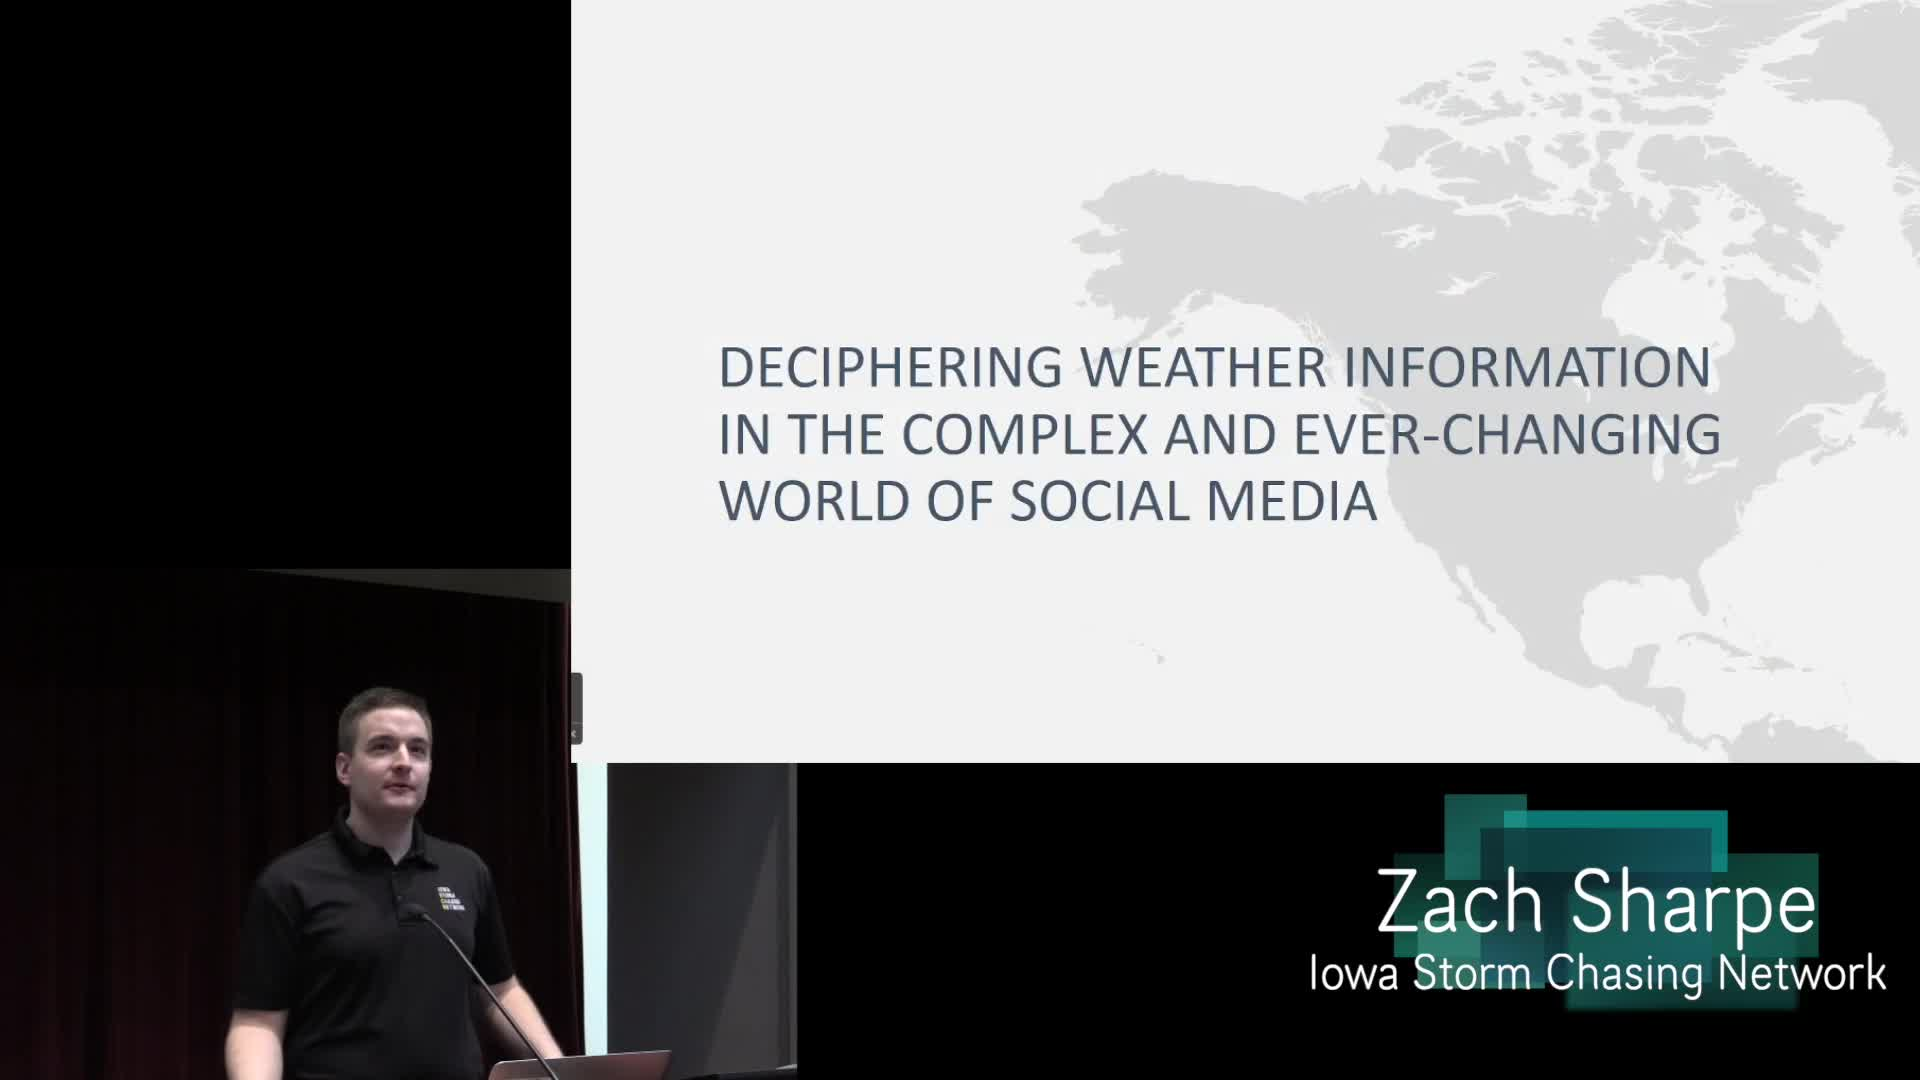 Deciphering Weather Information in the complex and ever-changing world of Social Media